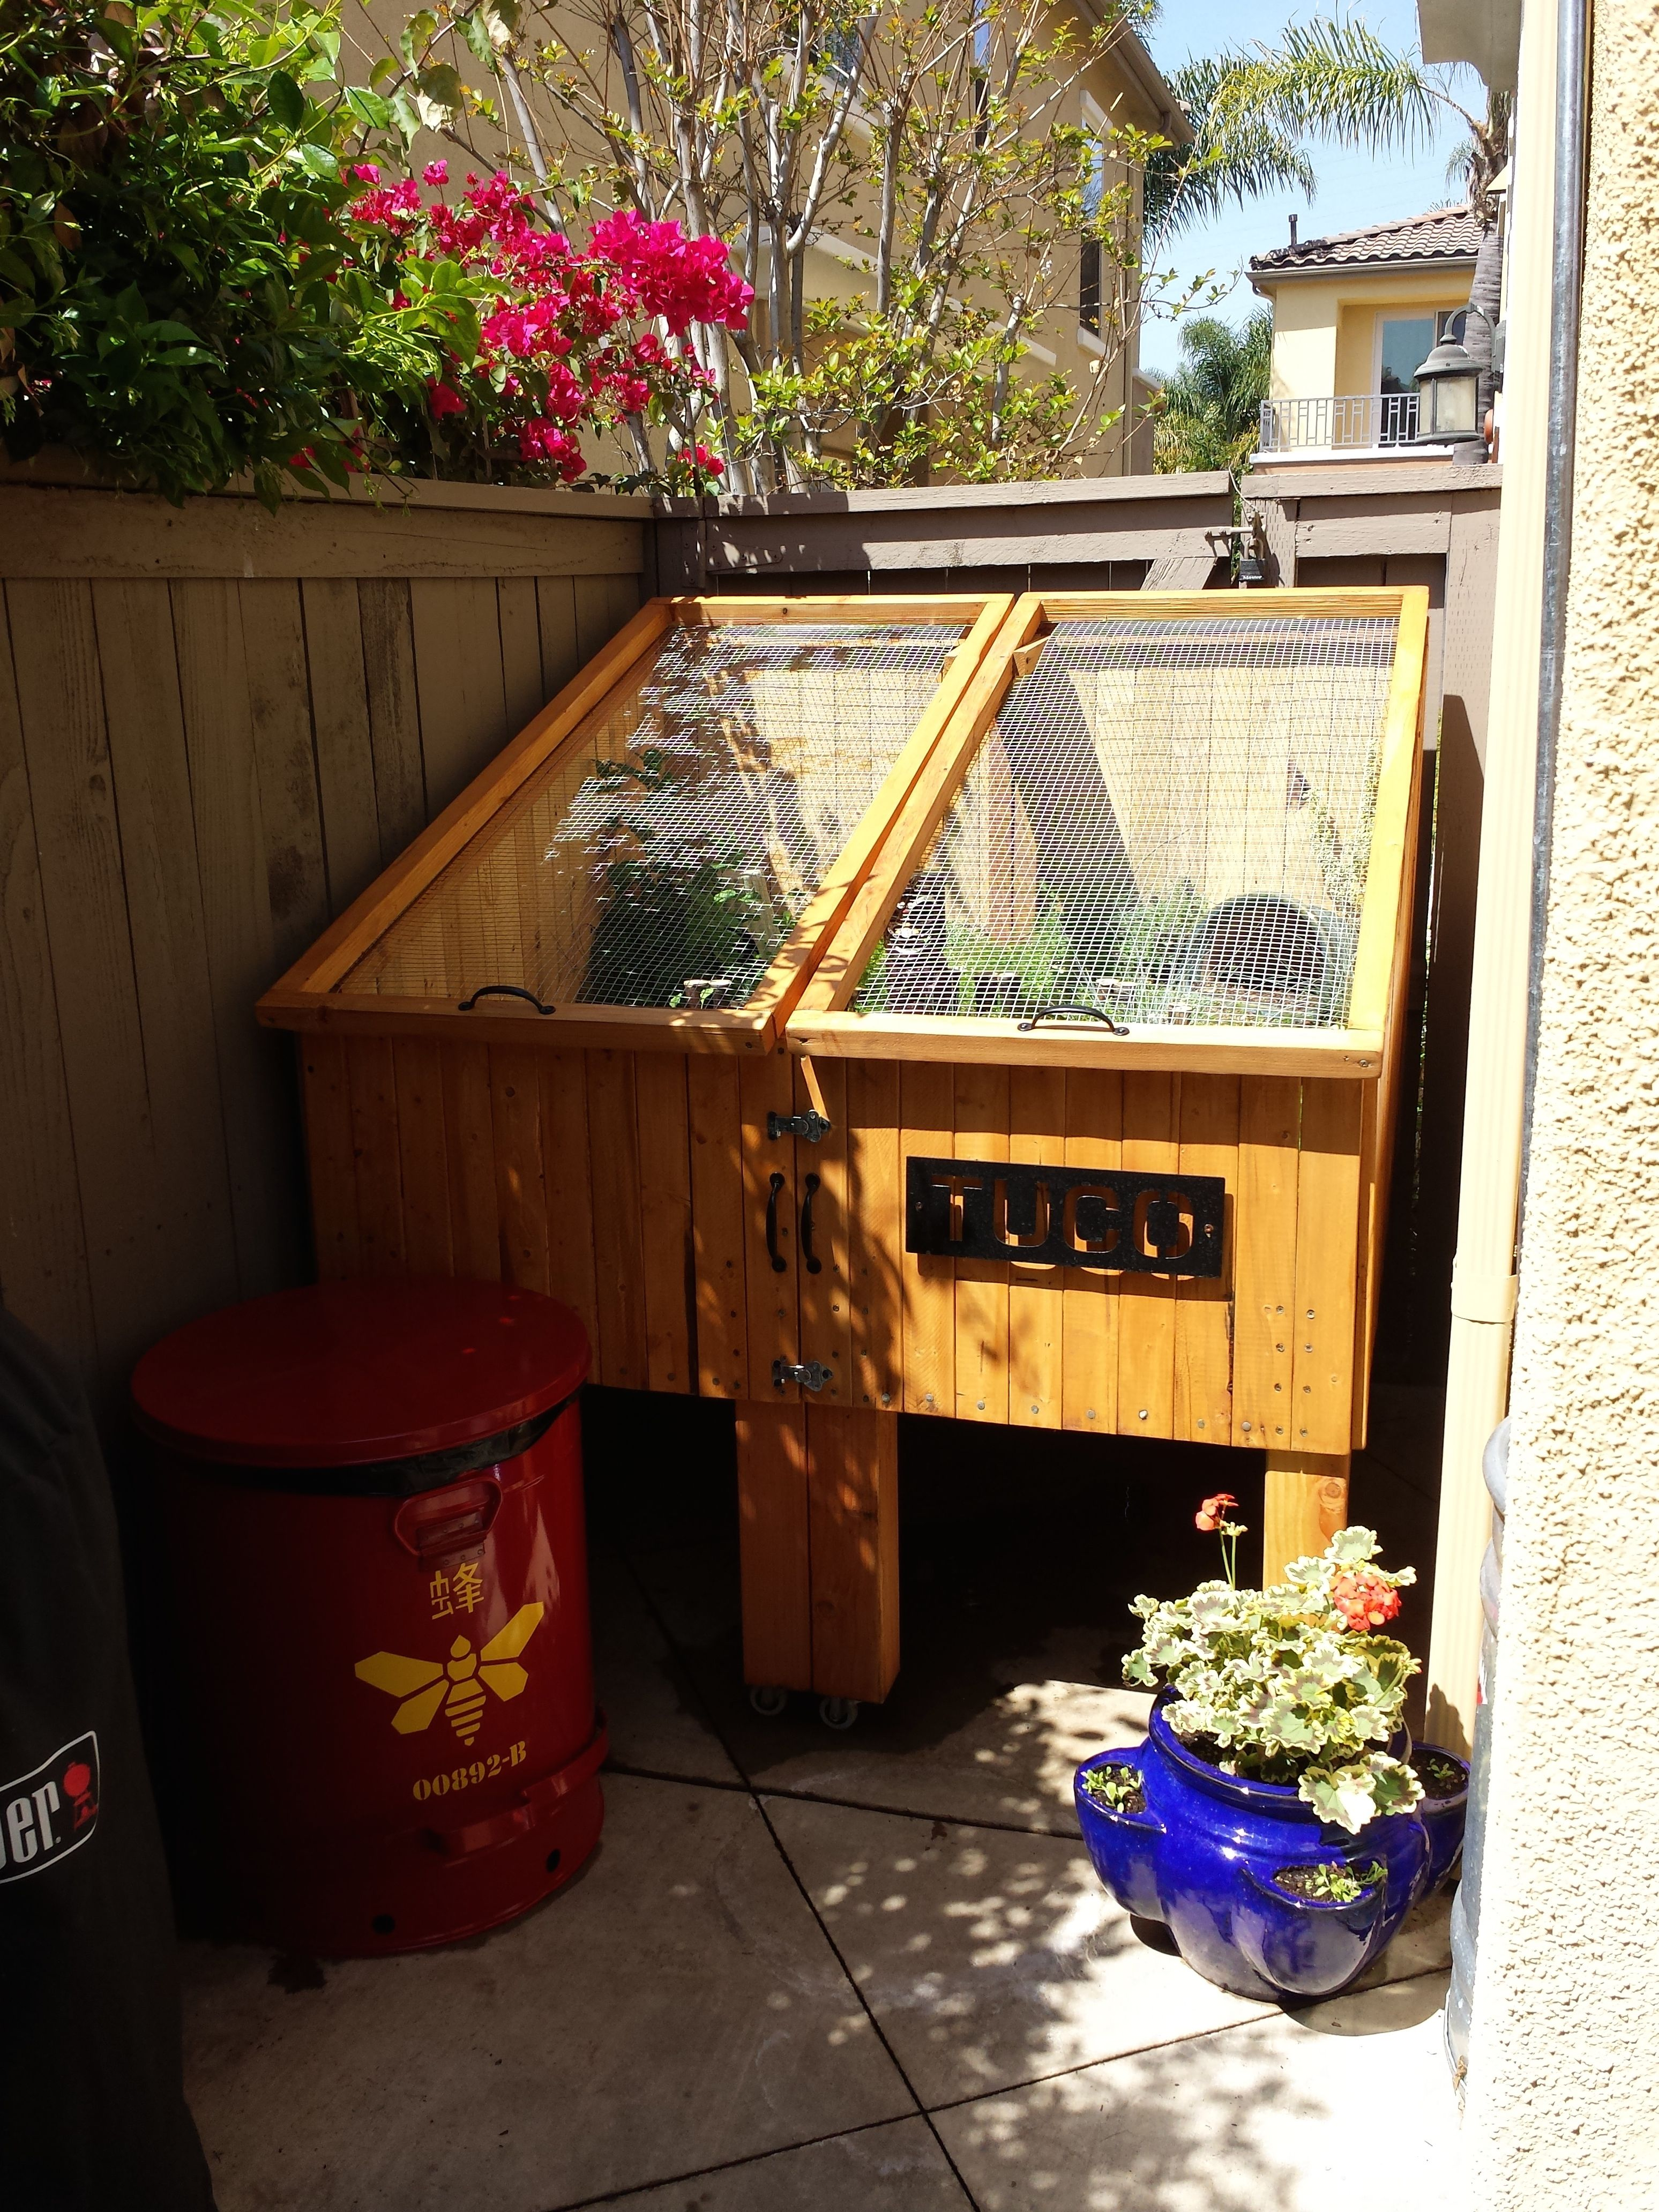 Outdoor tortoise enclosure complete with breaking bad trash can